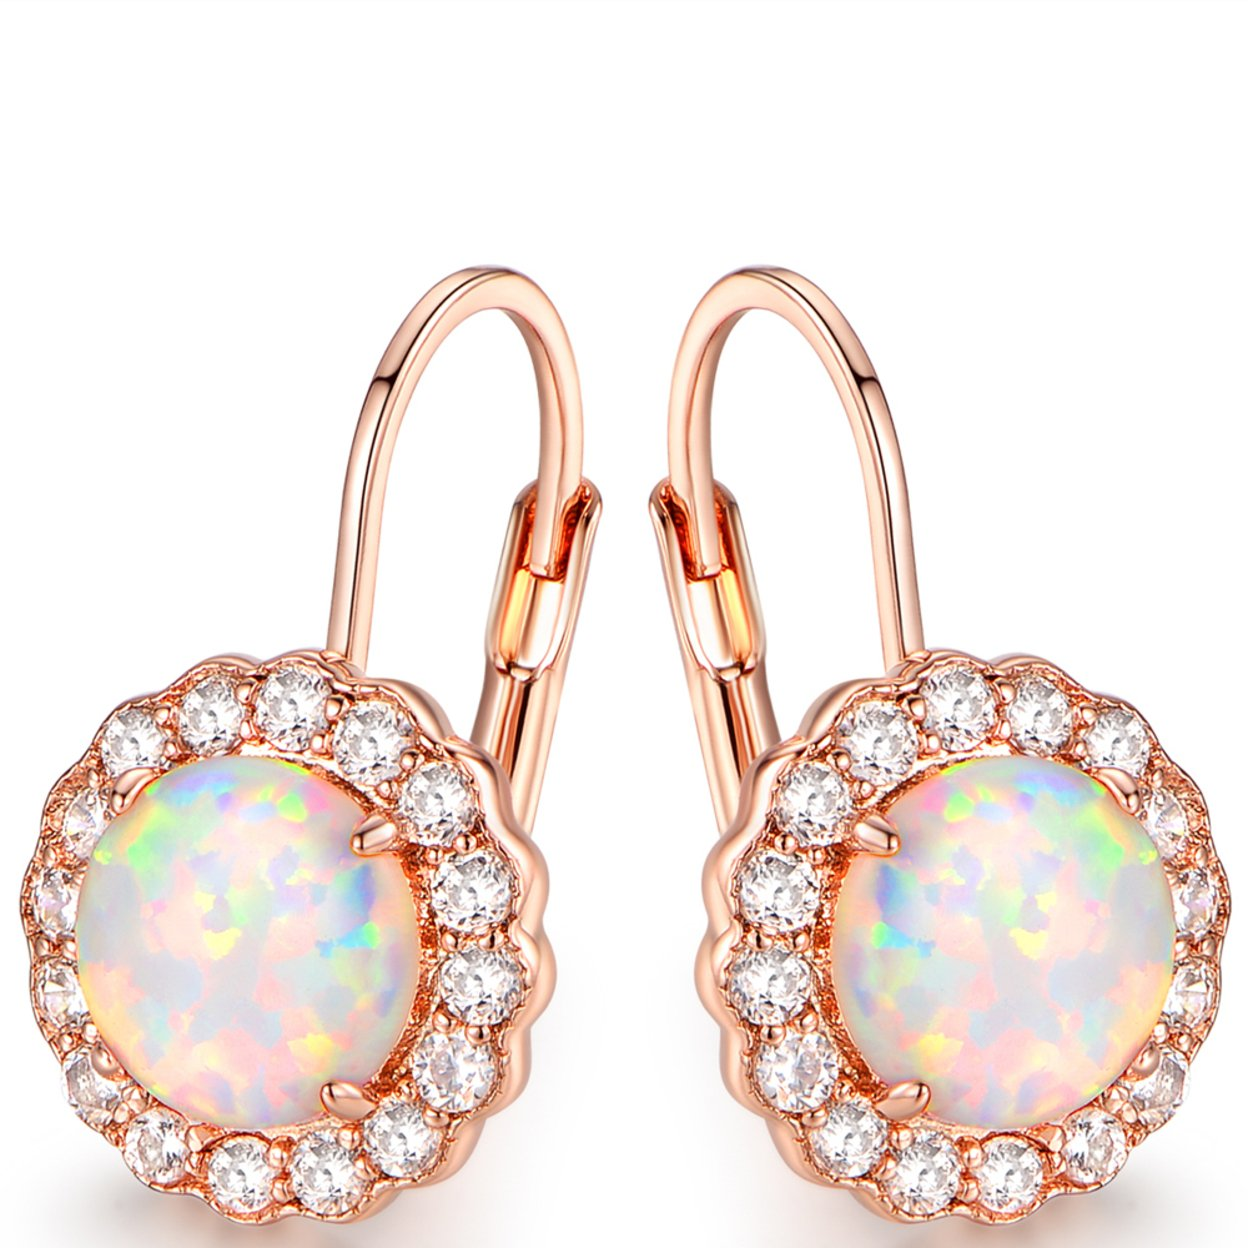 Rose Gold Plated White Fire Opal & Cubic Zirconia Flower Huggie Earrings